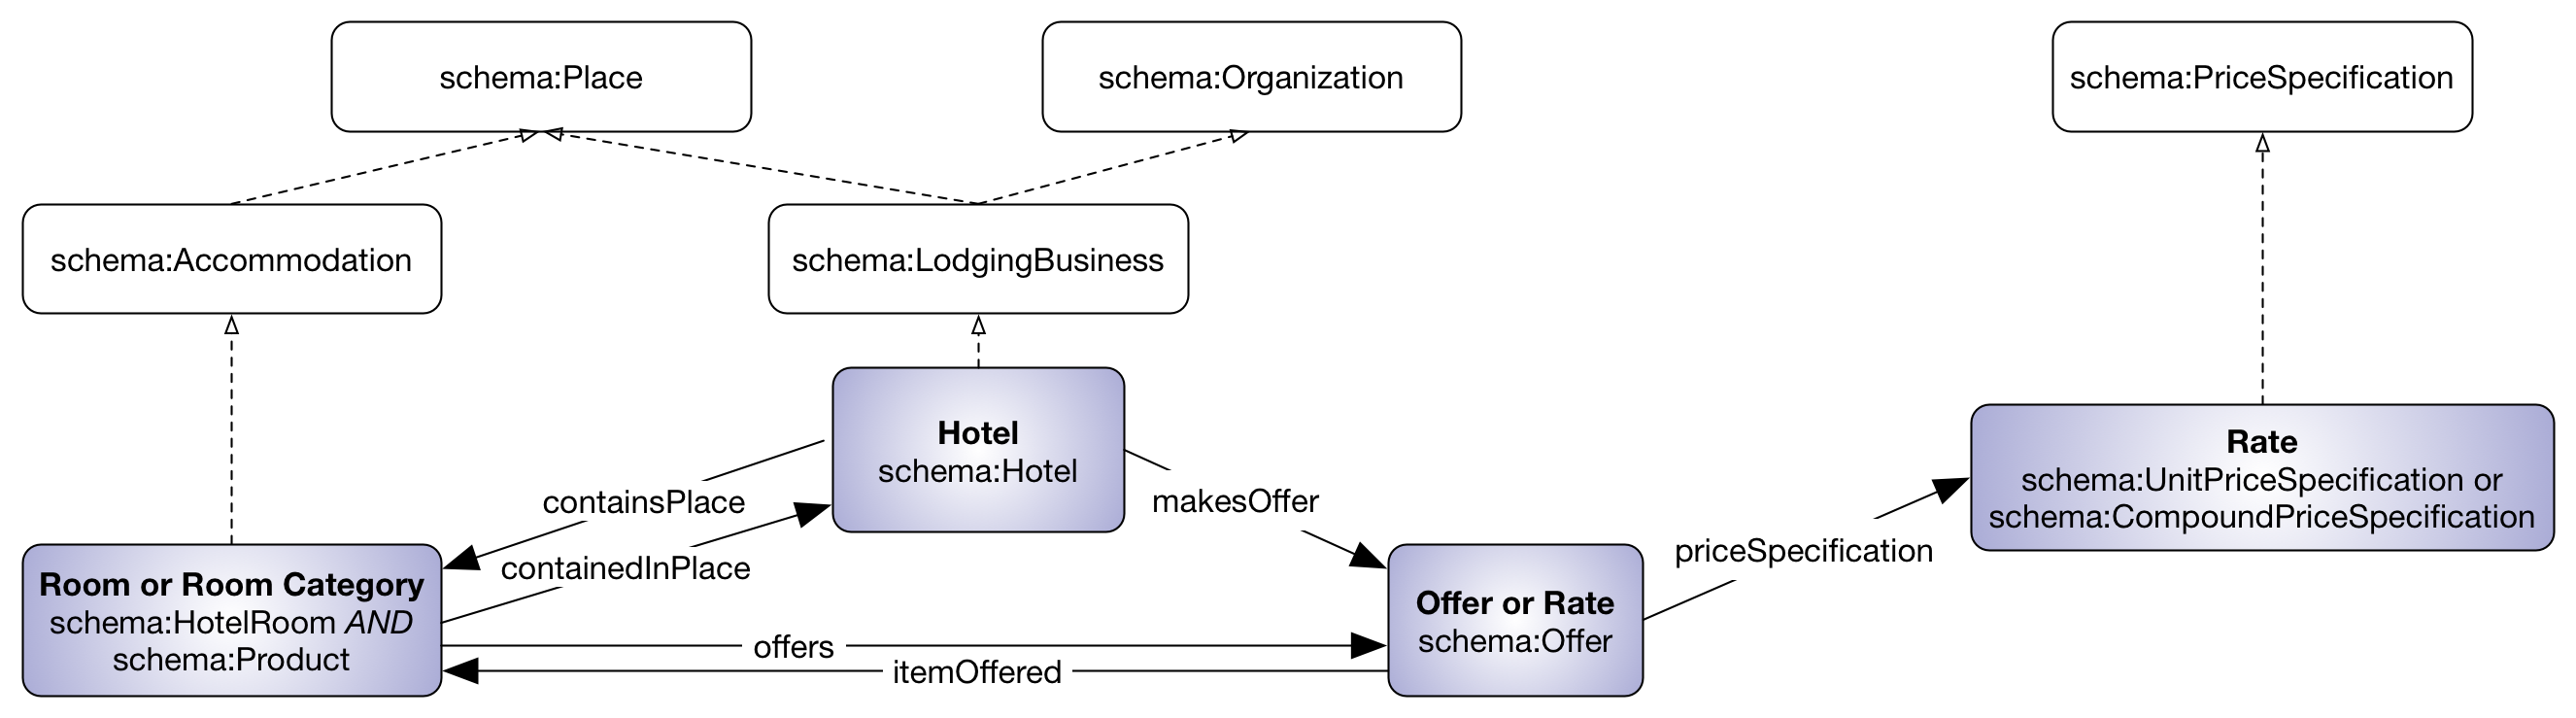 Markup for Hotels - schema.org